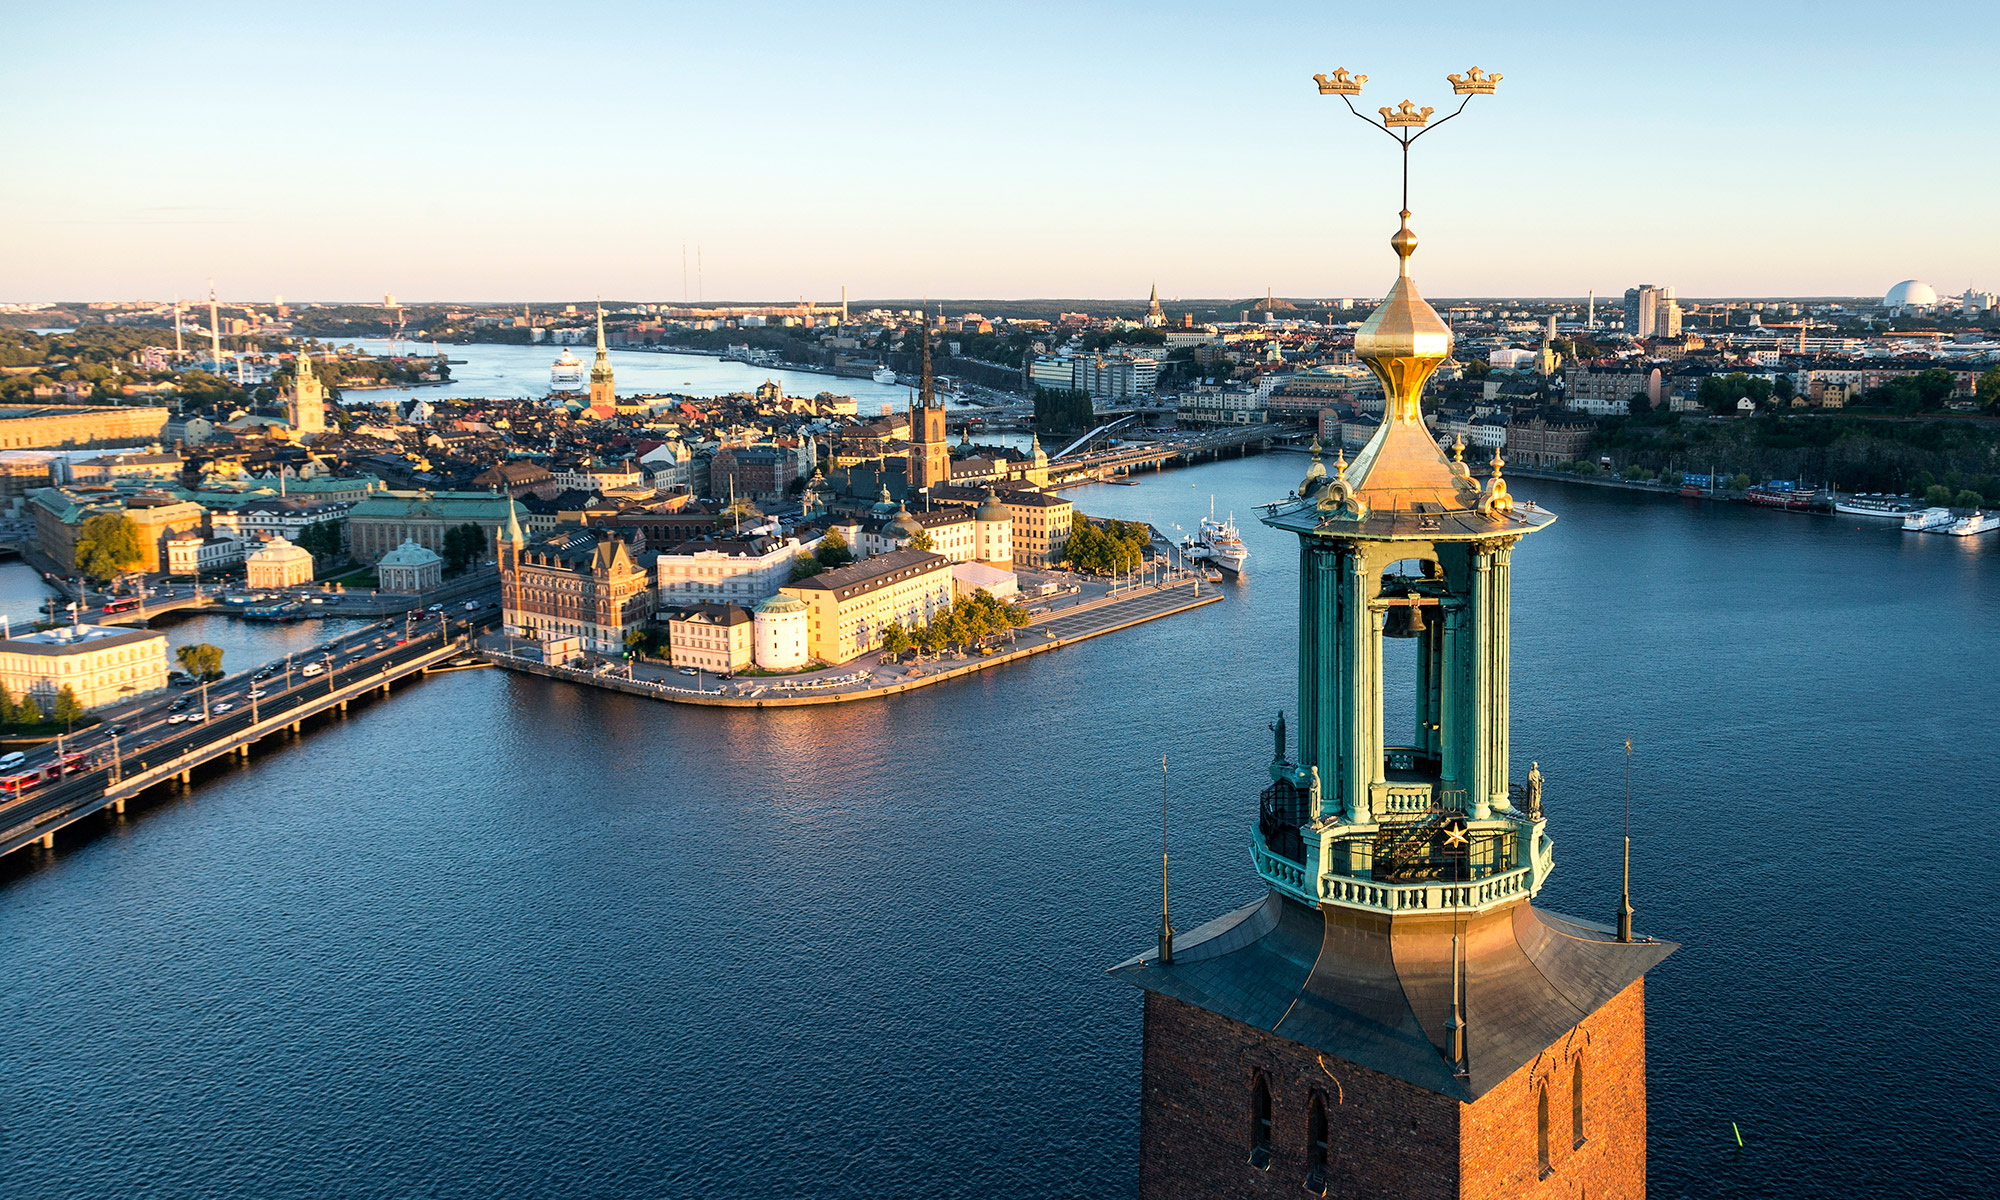 ICCBR 2018 - 26th International Conference on Case-Based Reasoning, July 9-12 in Stockholm, Sweden